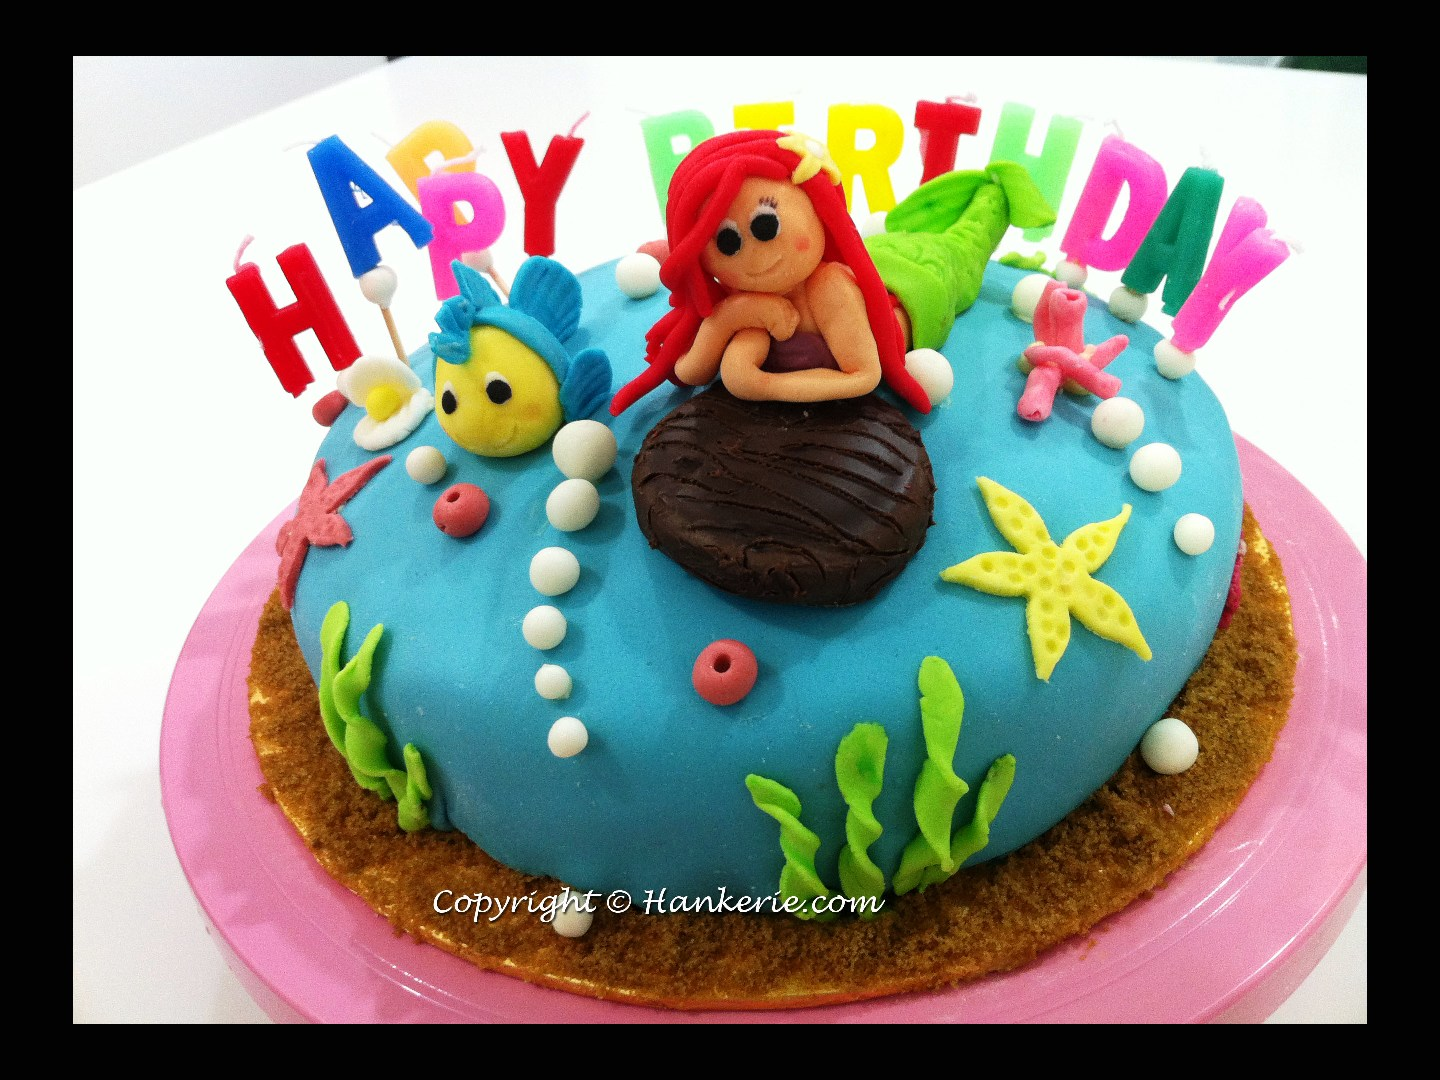 The Little Mermaid Ariel fondant cake Hankerie